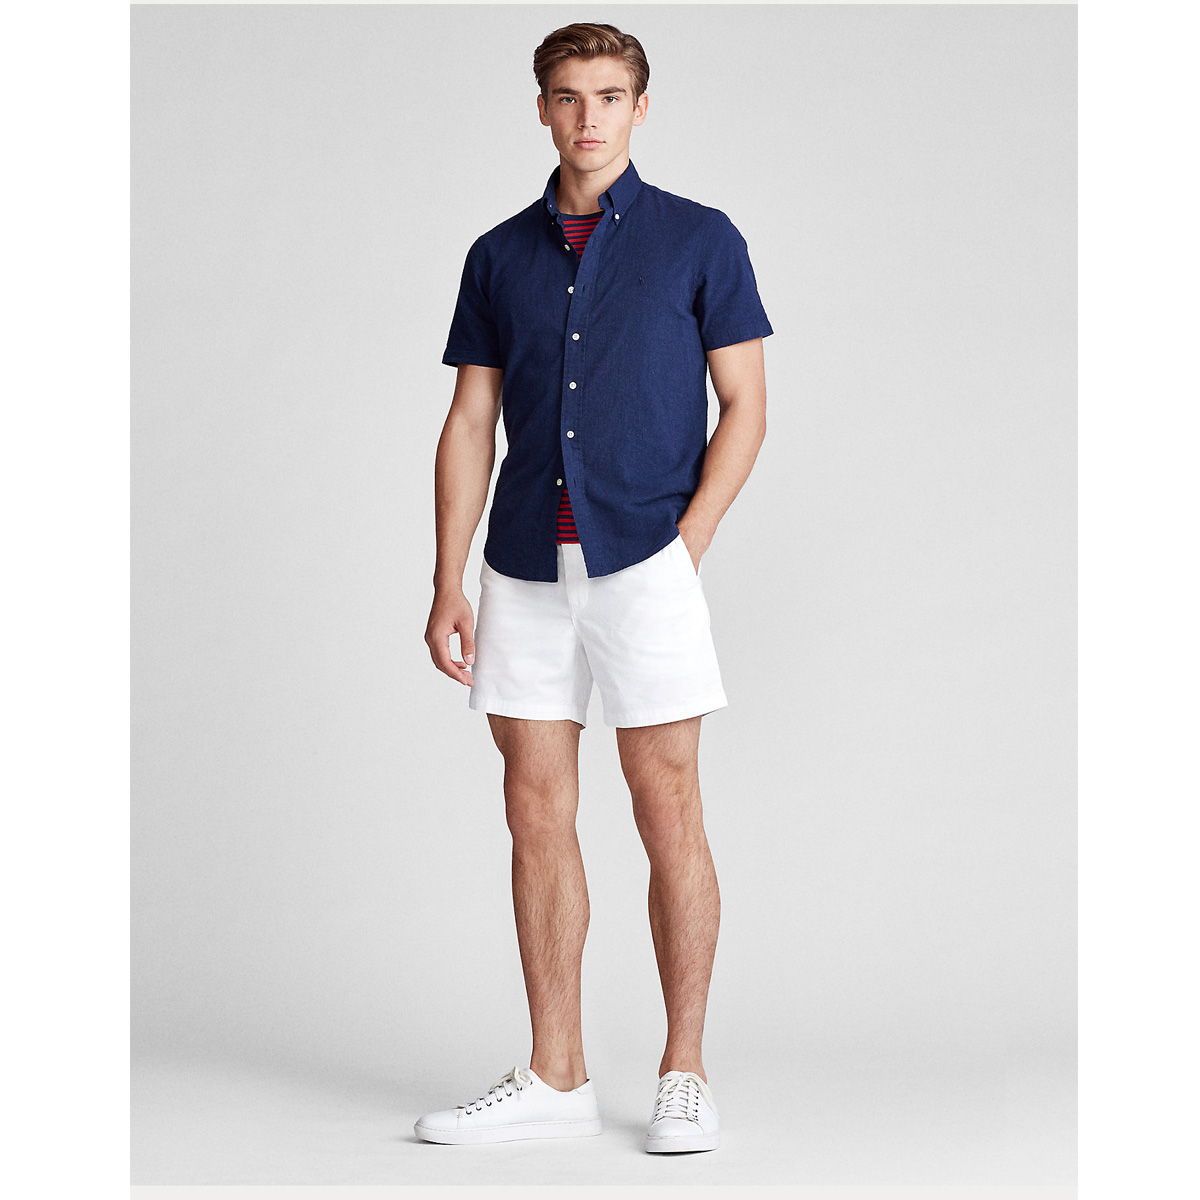 ao-so-mi-polo-ralph-lauren-classic-fit-12